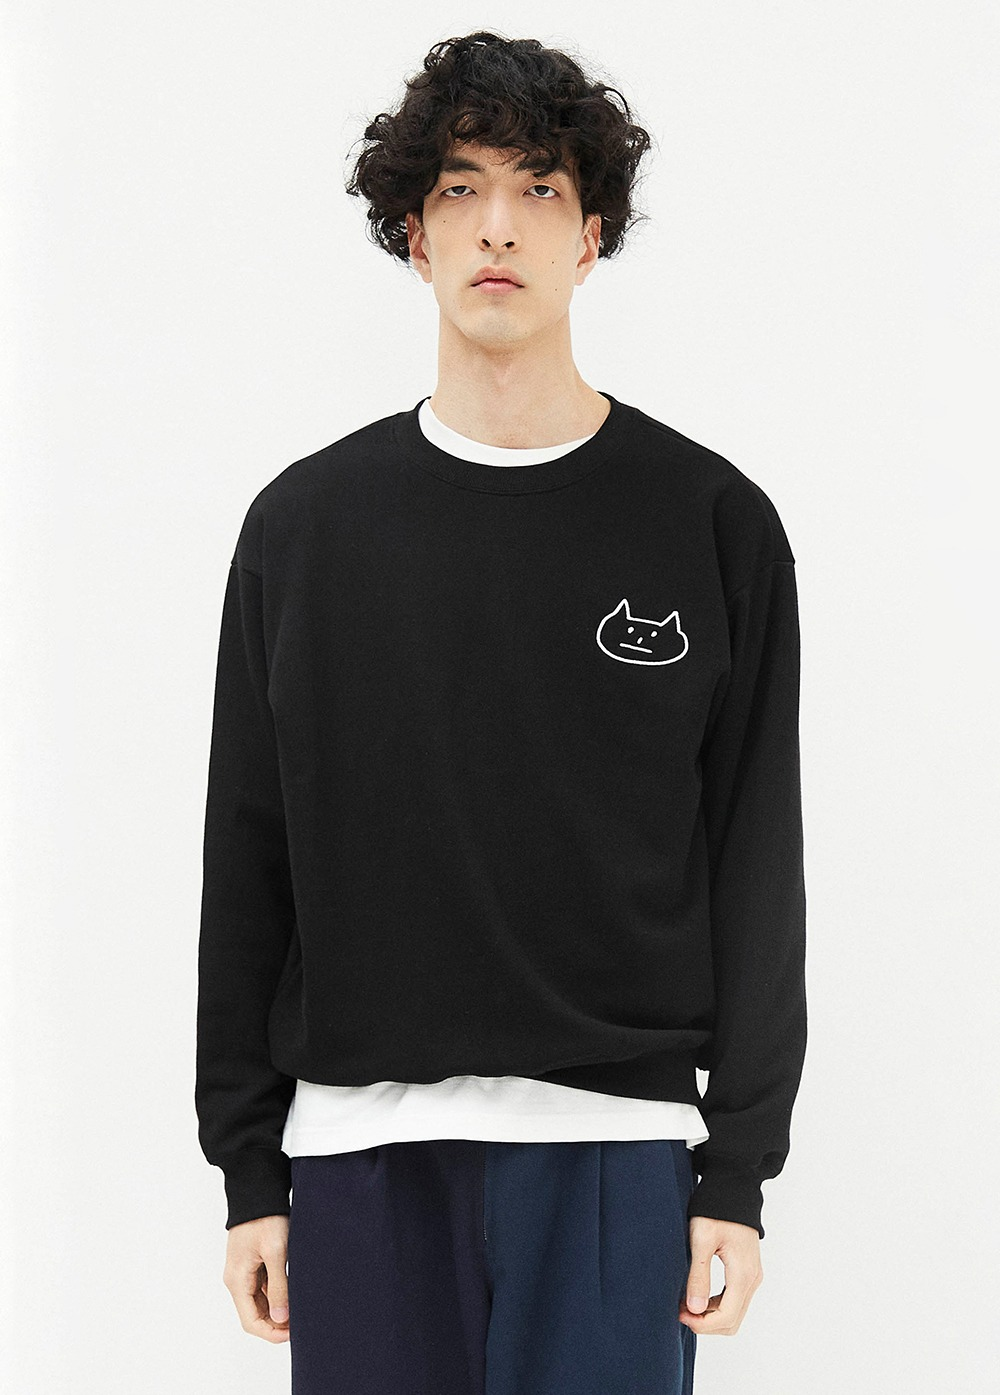 KANCO CAT SWEATSHIRT black